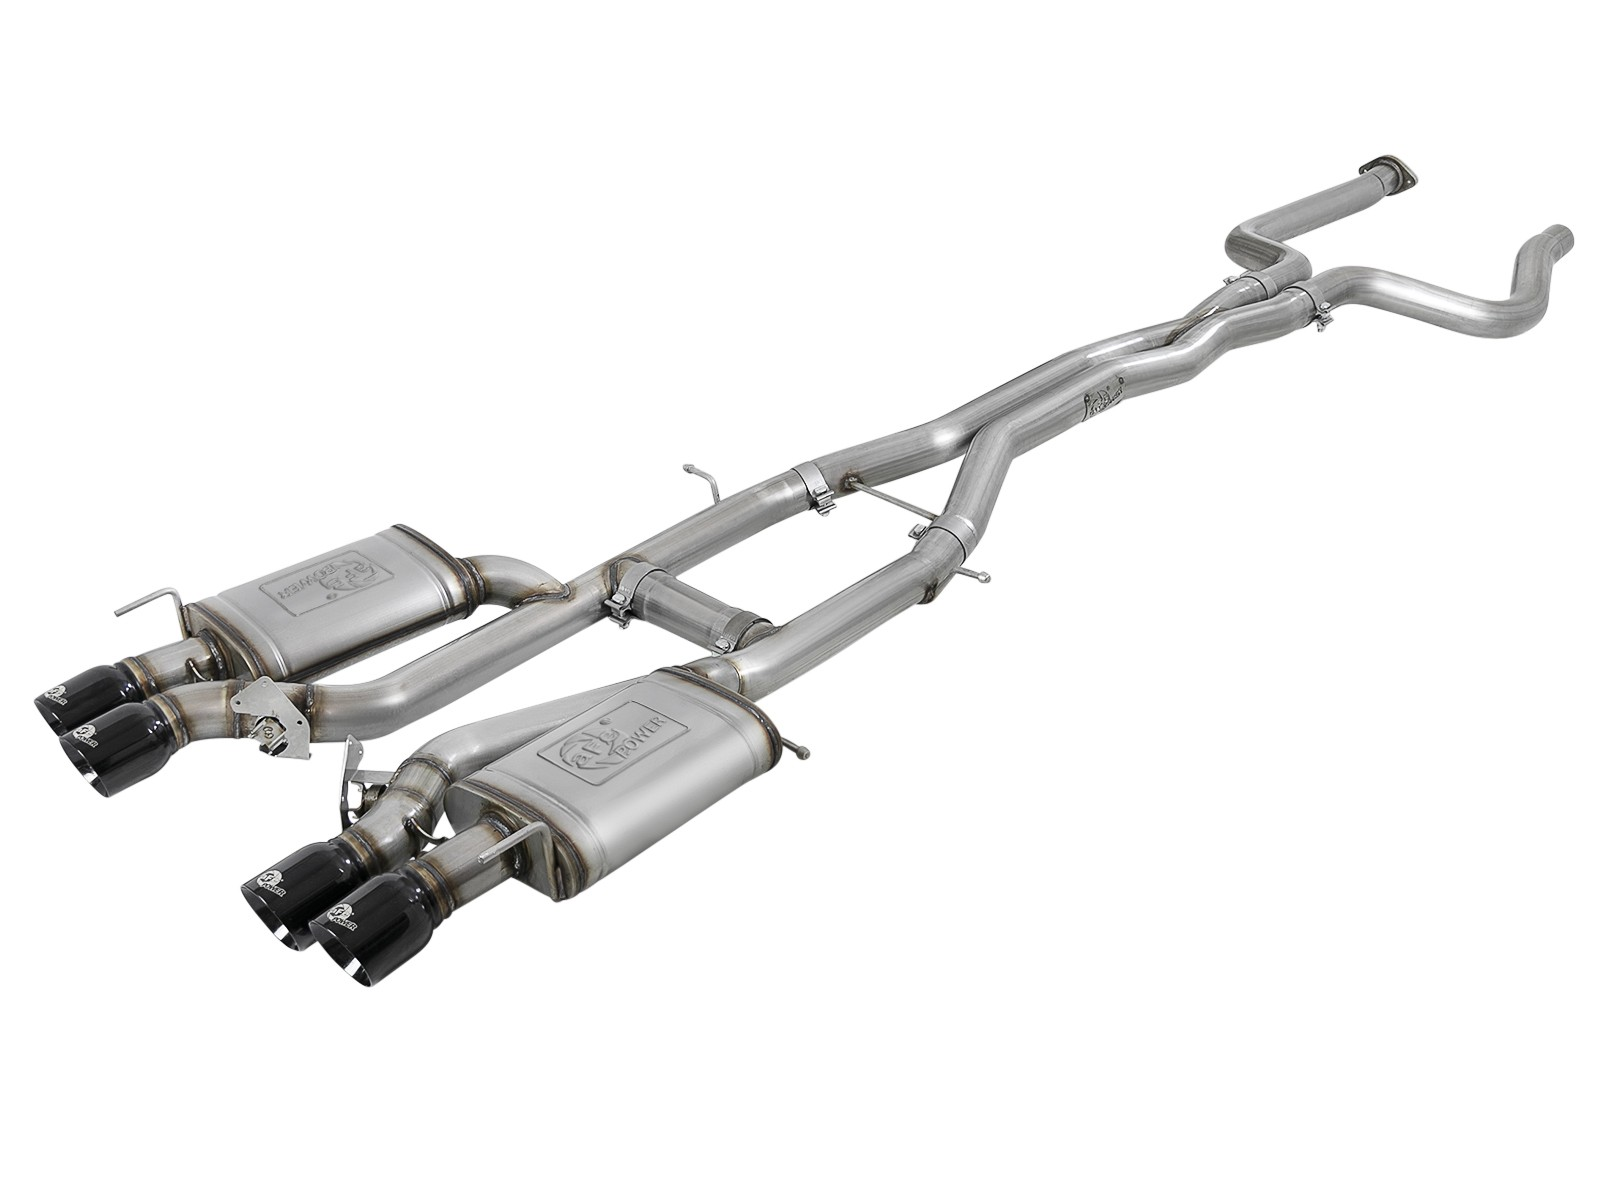 Mach Force Xp 3 304 Stainless Steel Cat Back Exhaust